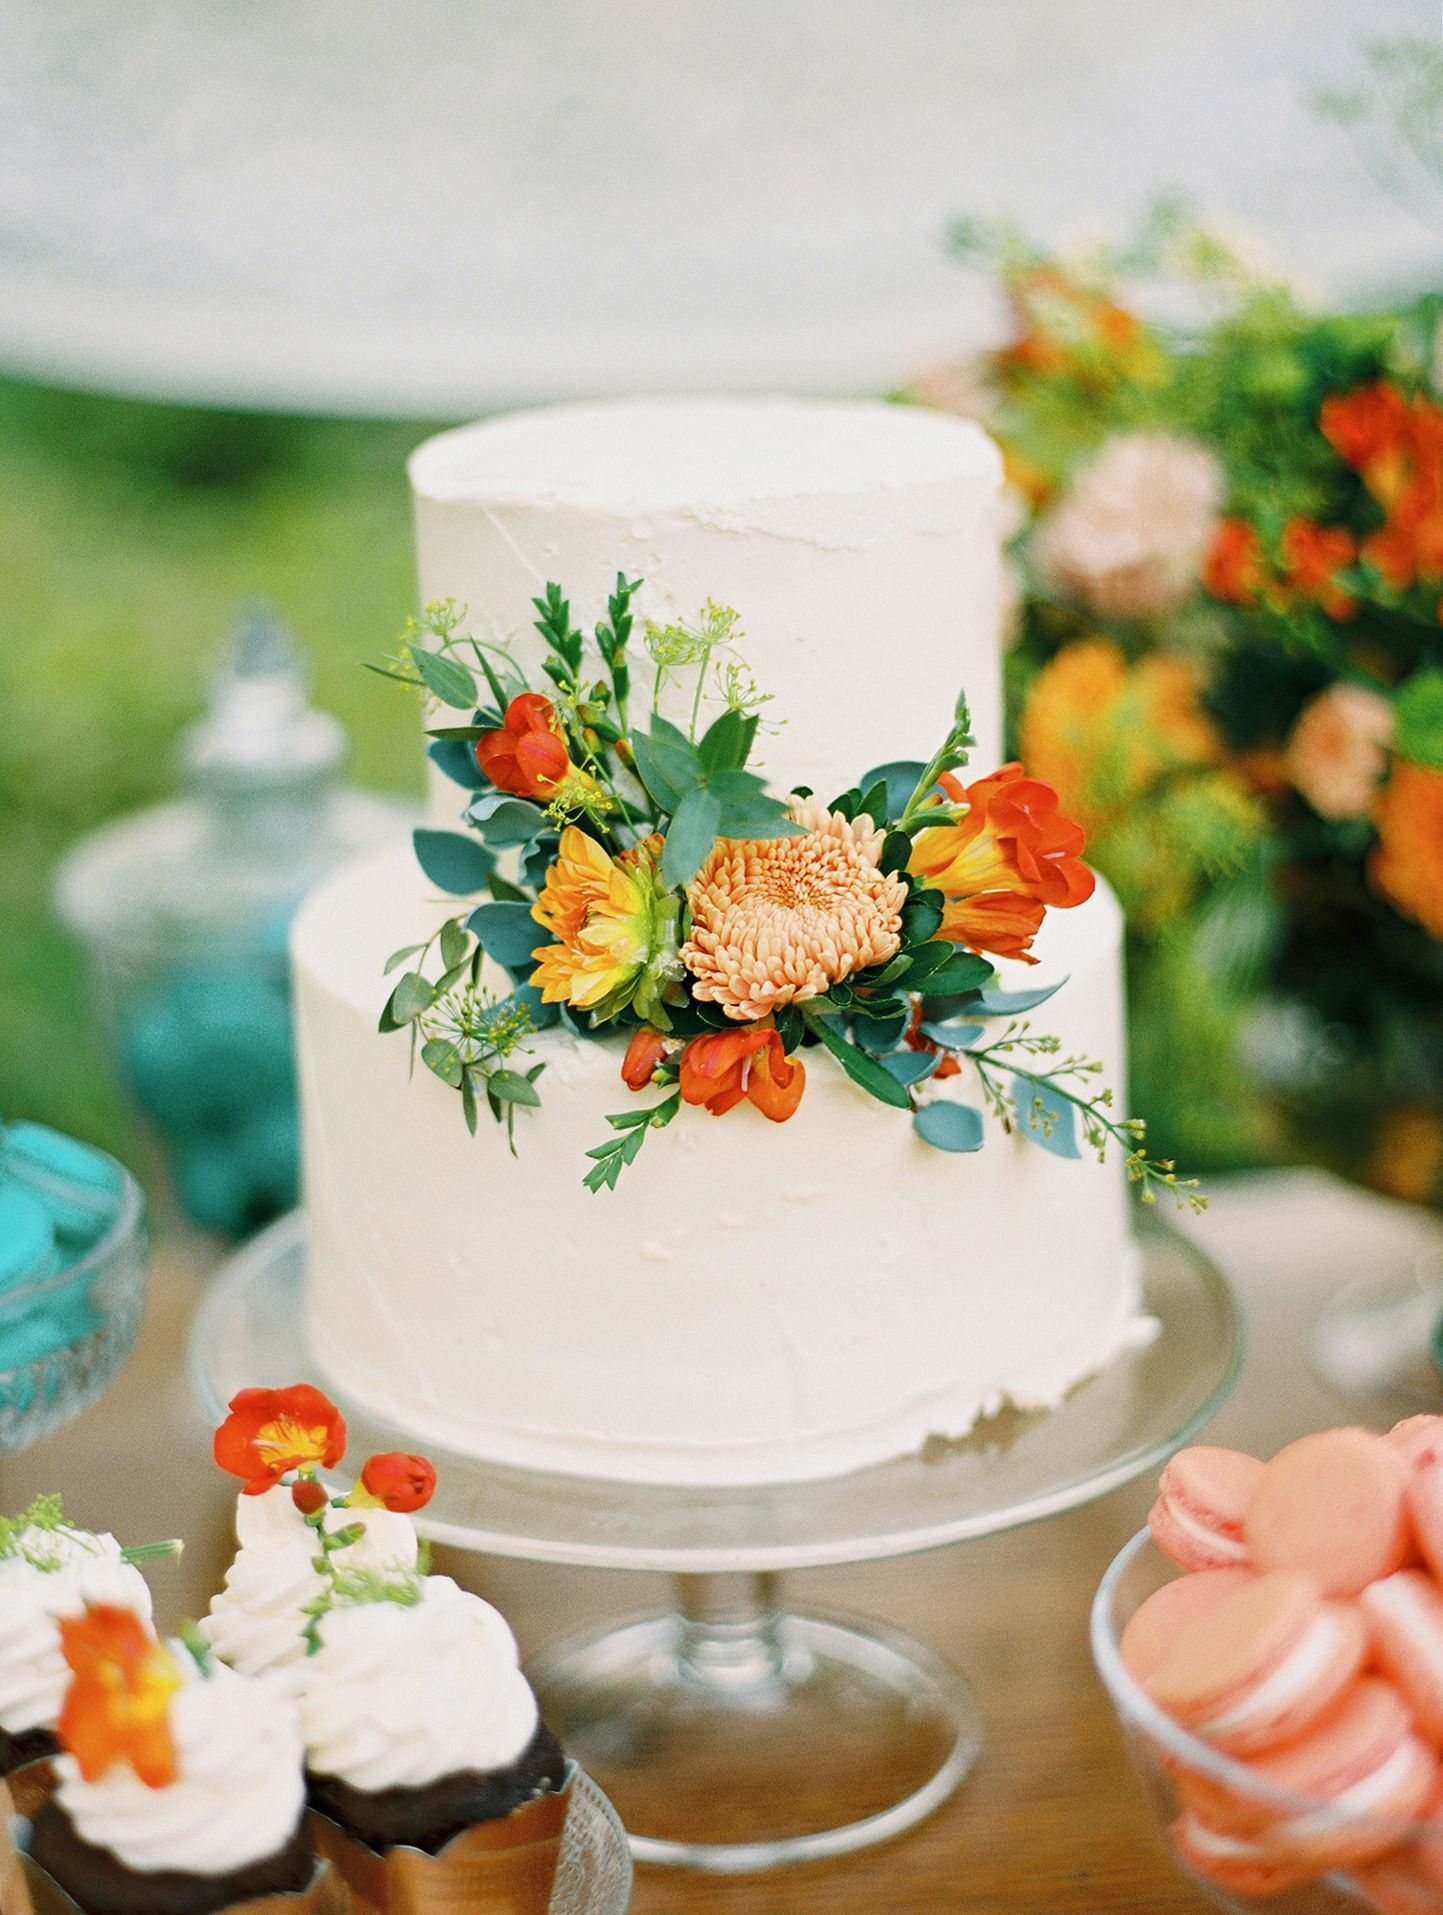 Simple White Cake Decorated With Fresh Flowers From The Season